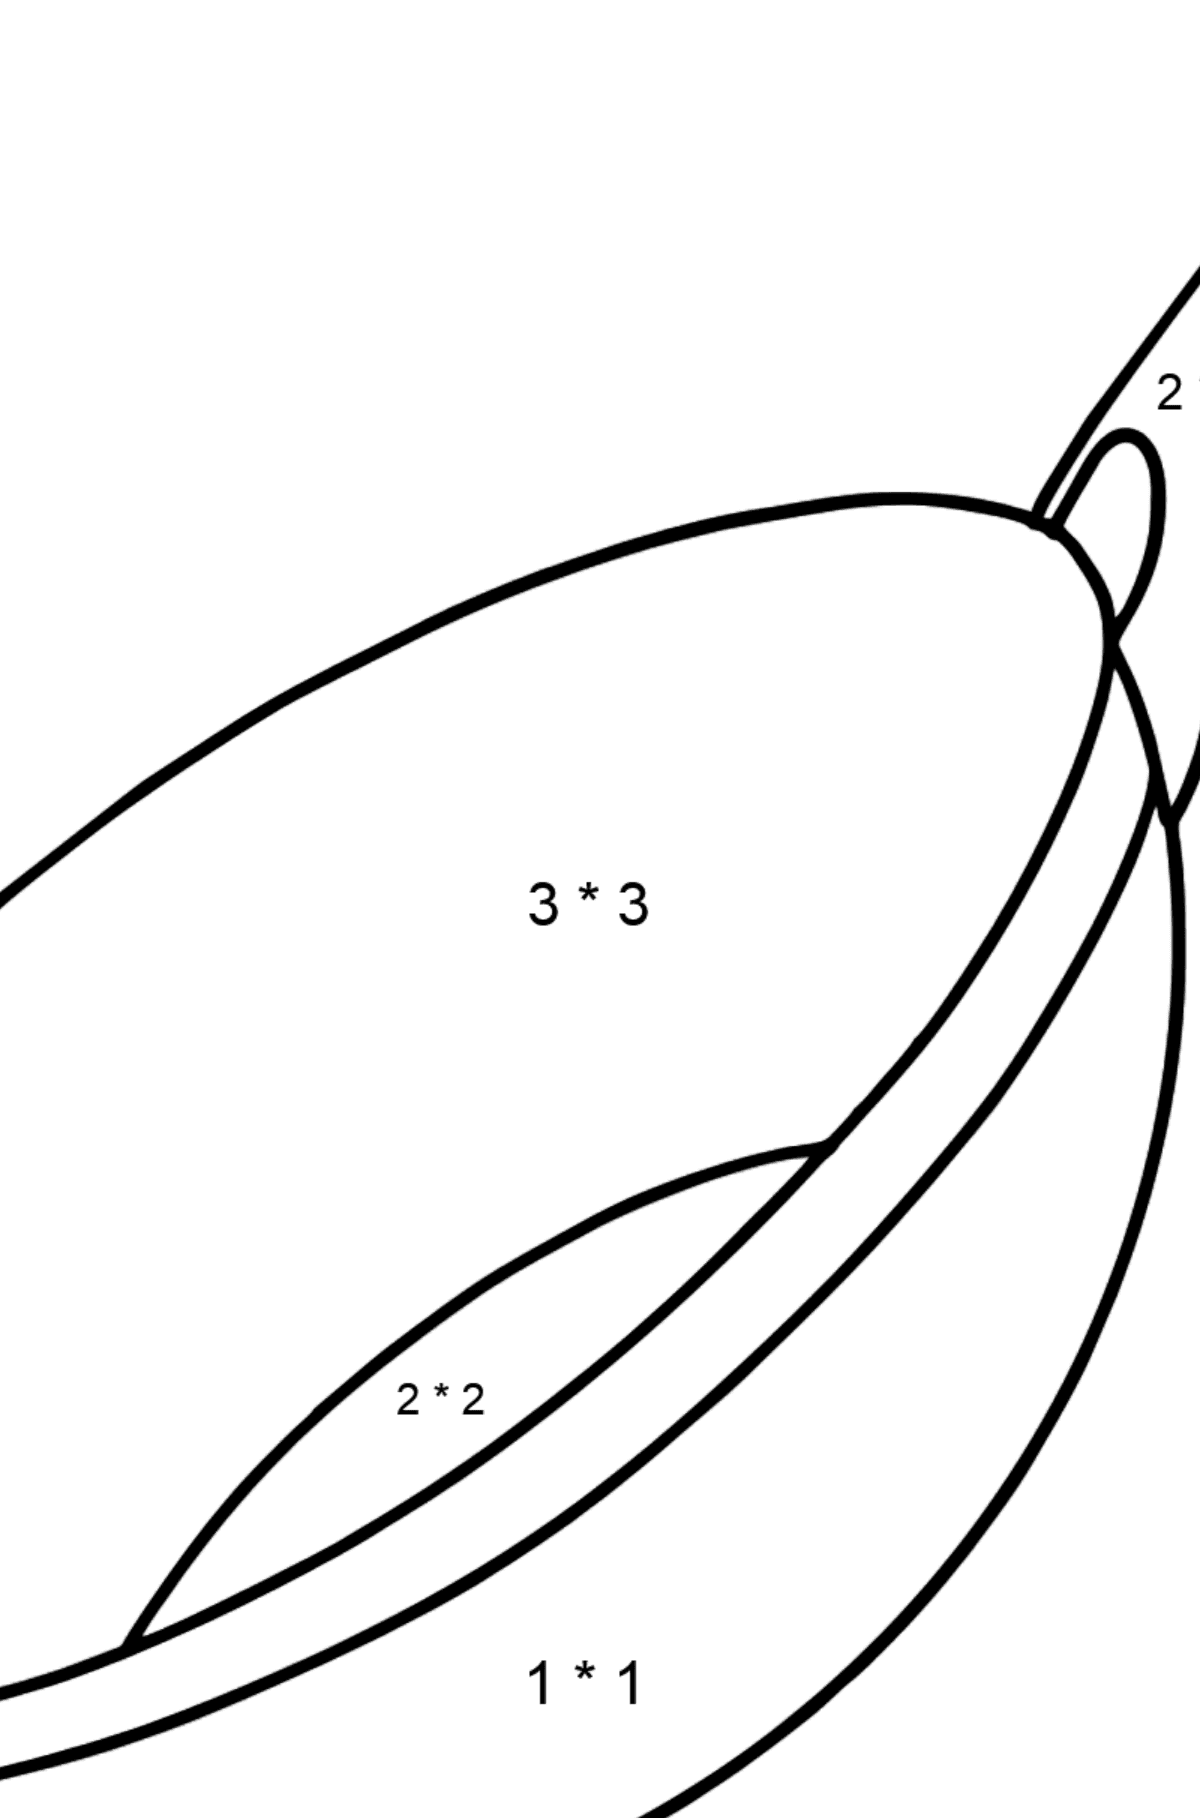 Wok pan coloring page - Math Coloring - Multiplication for Kids